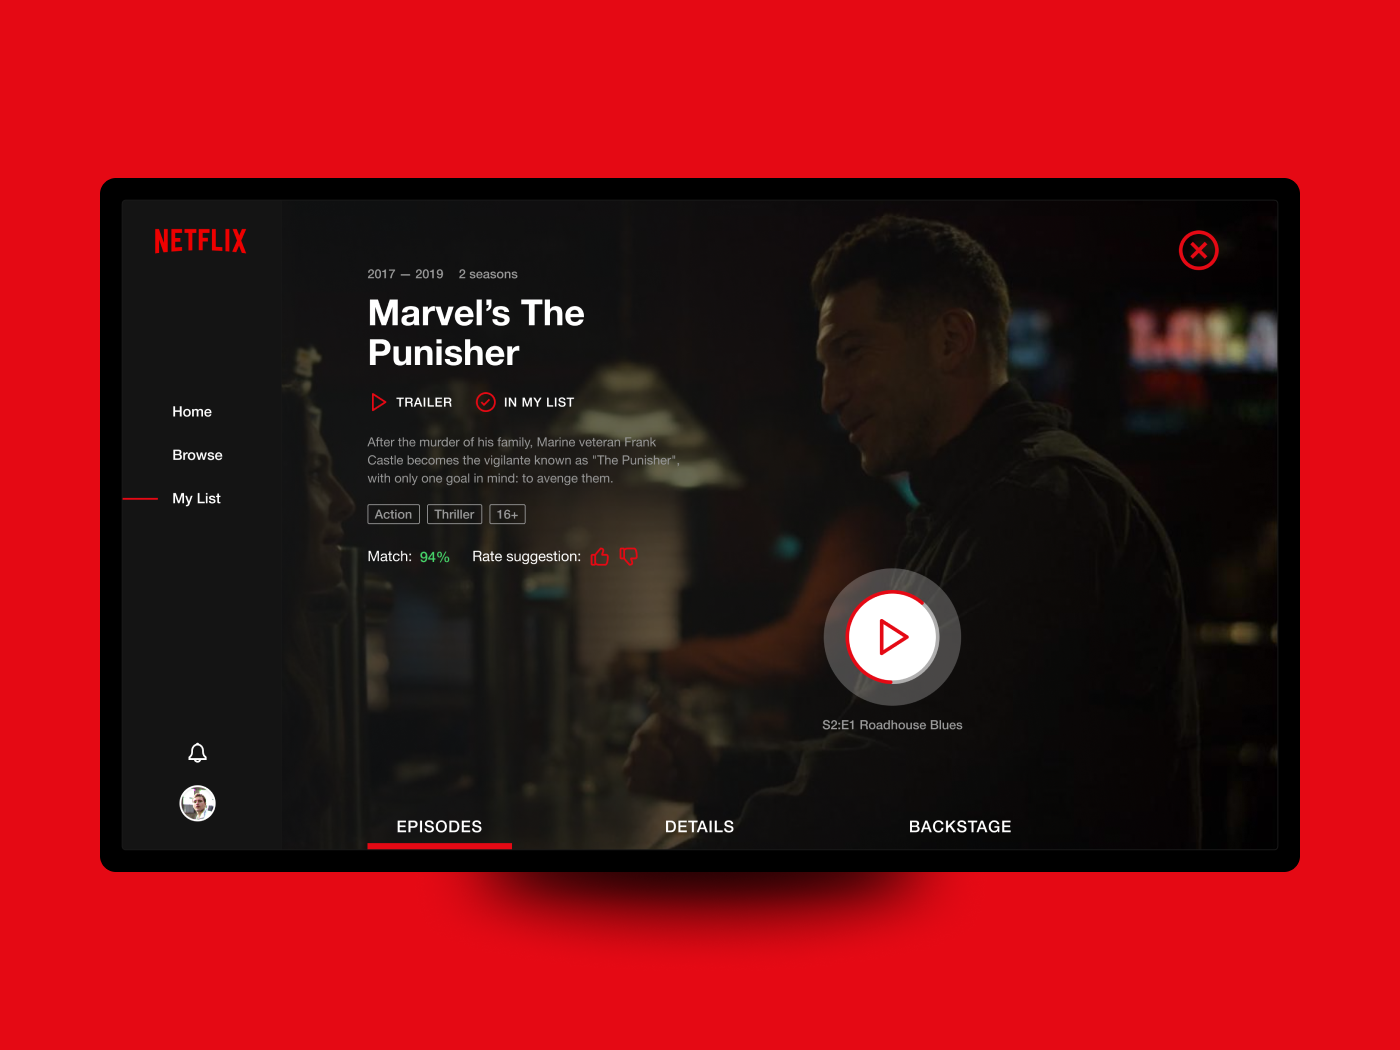 Netflix TV Show Page Concept by Andrey Semyonov on Dribbble